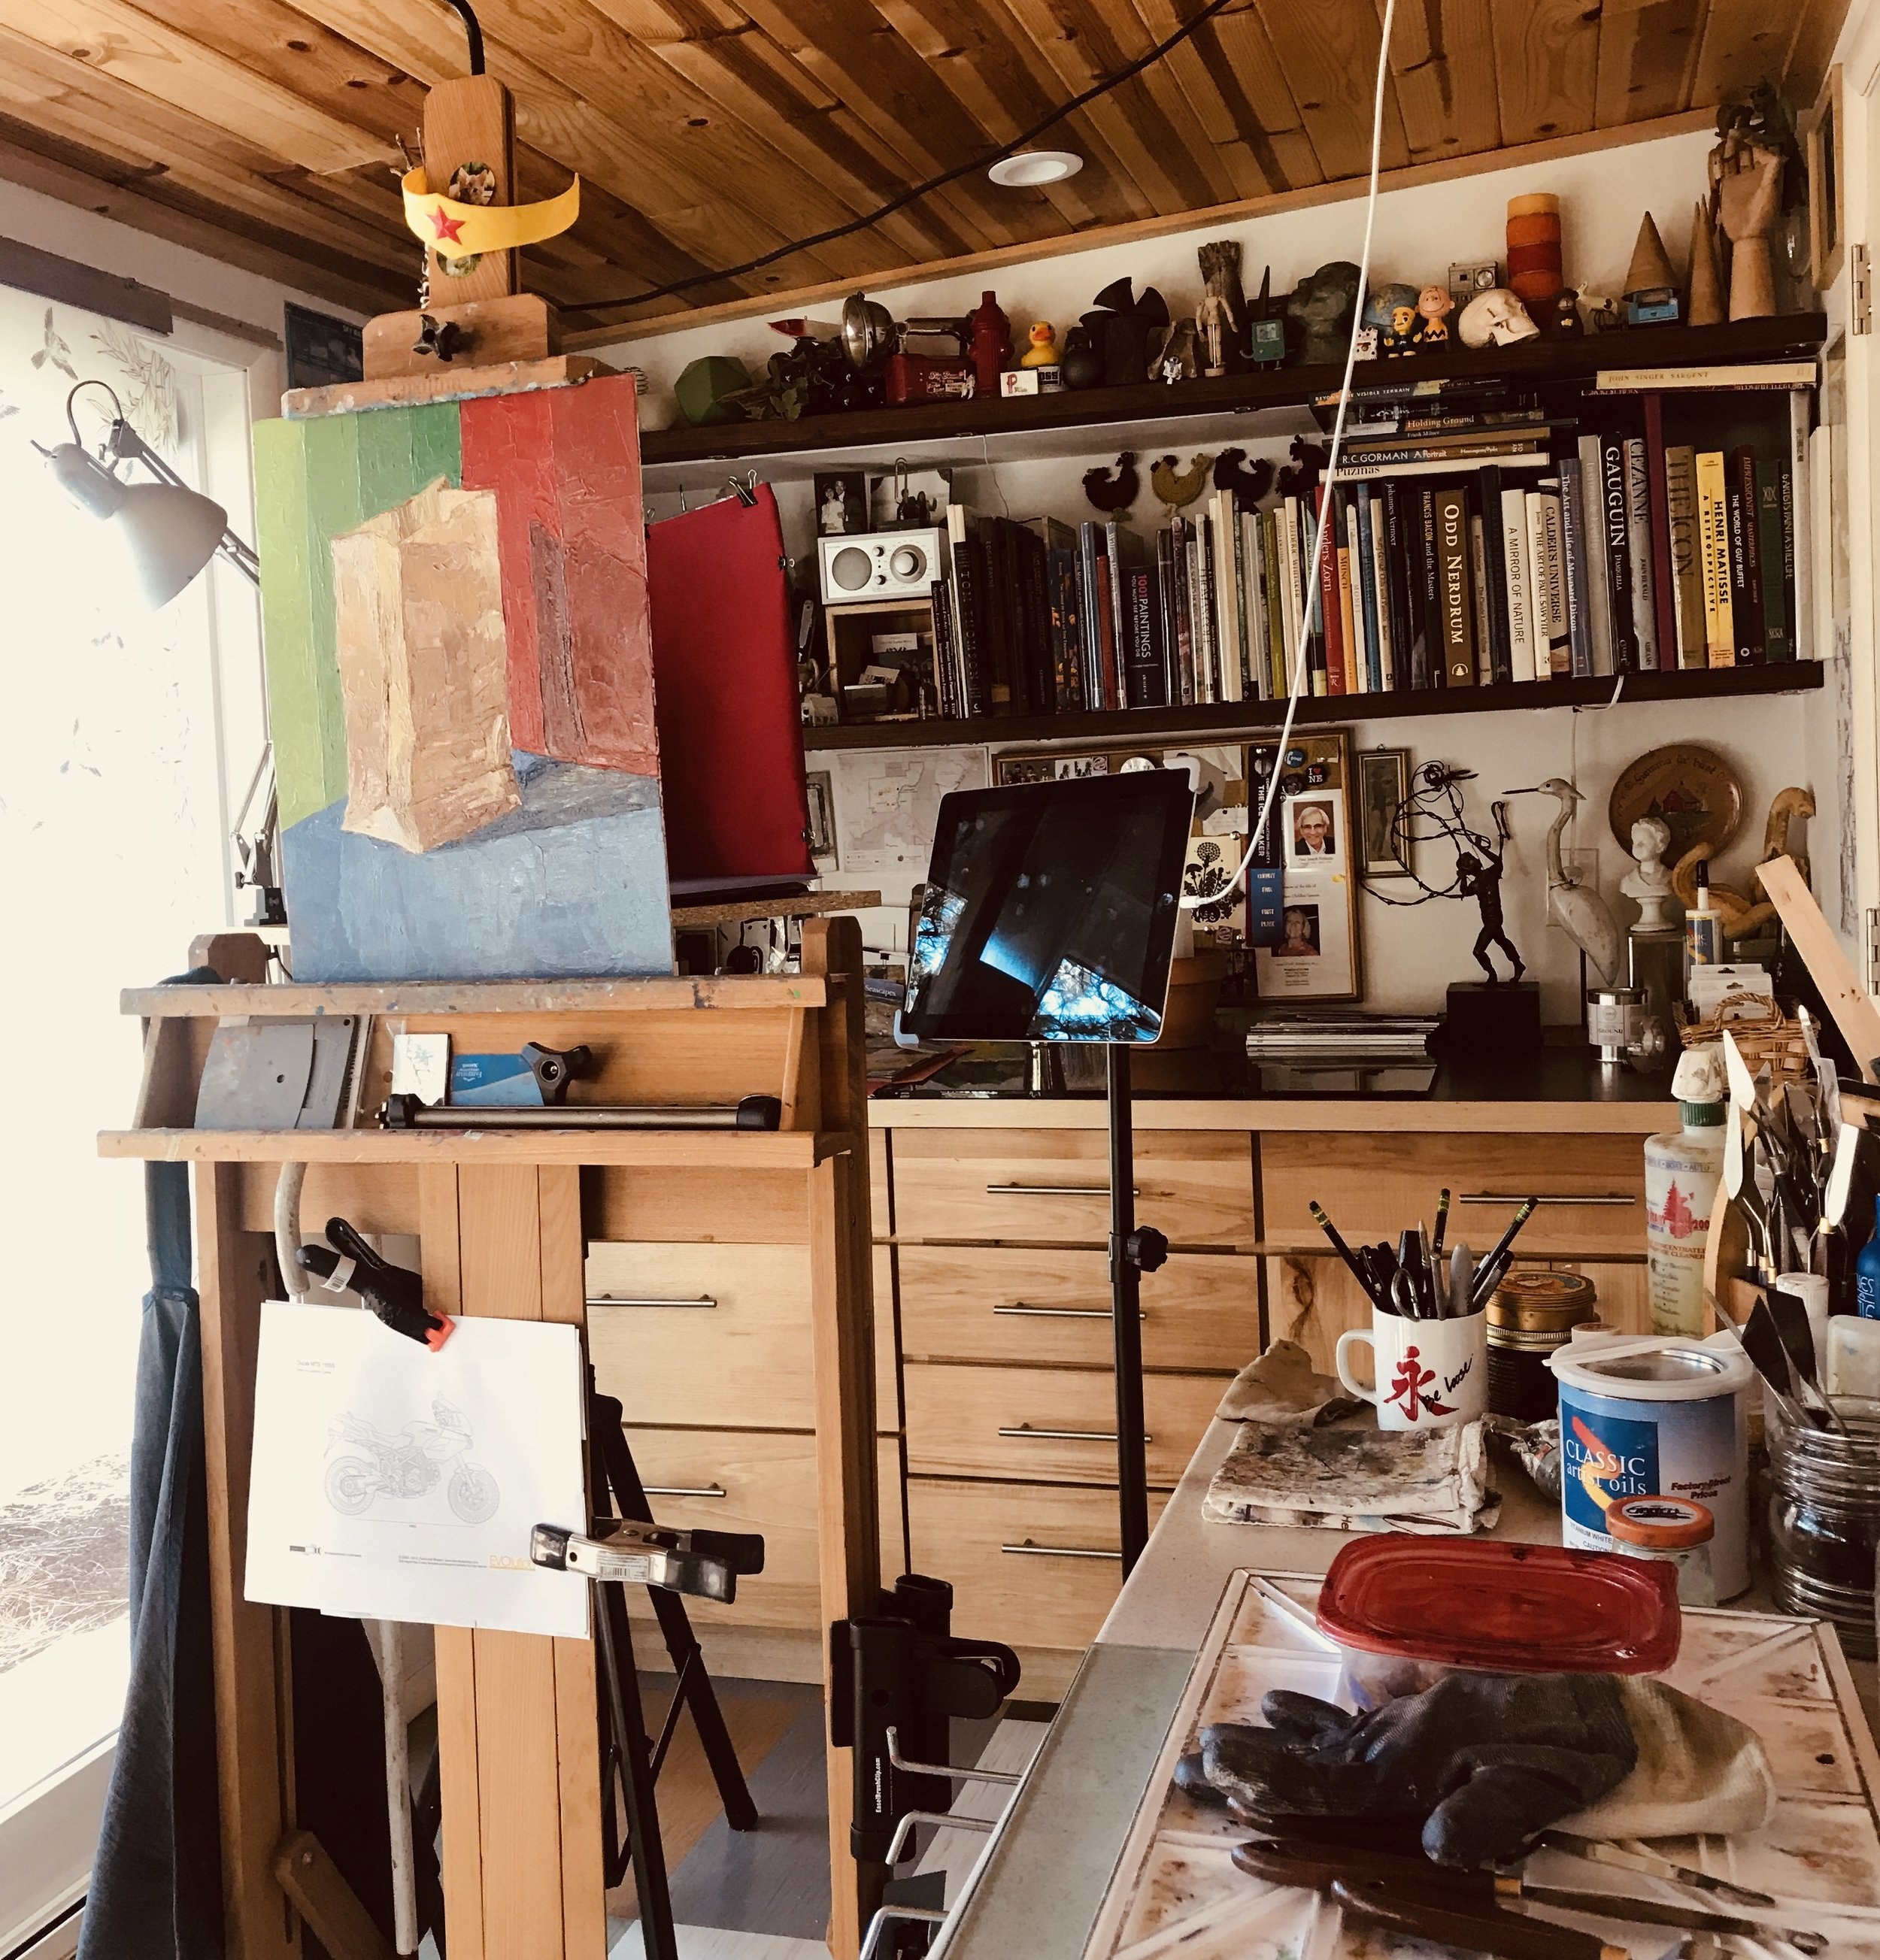 Rebekah's home studio, currently in progress with a 30 day color study.